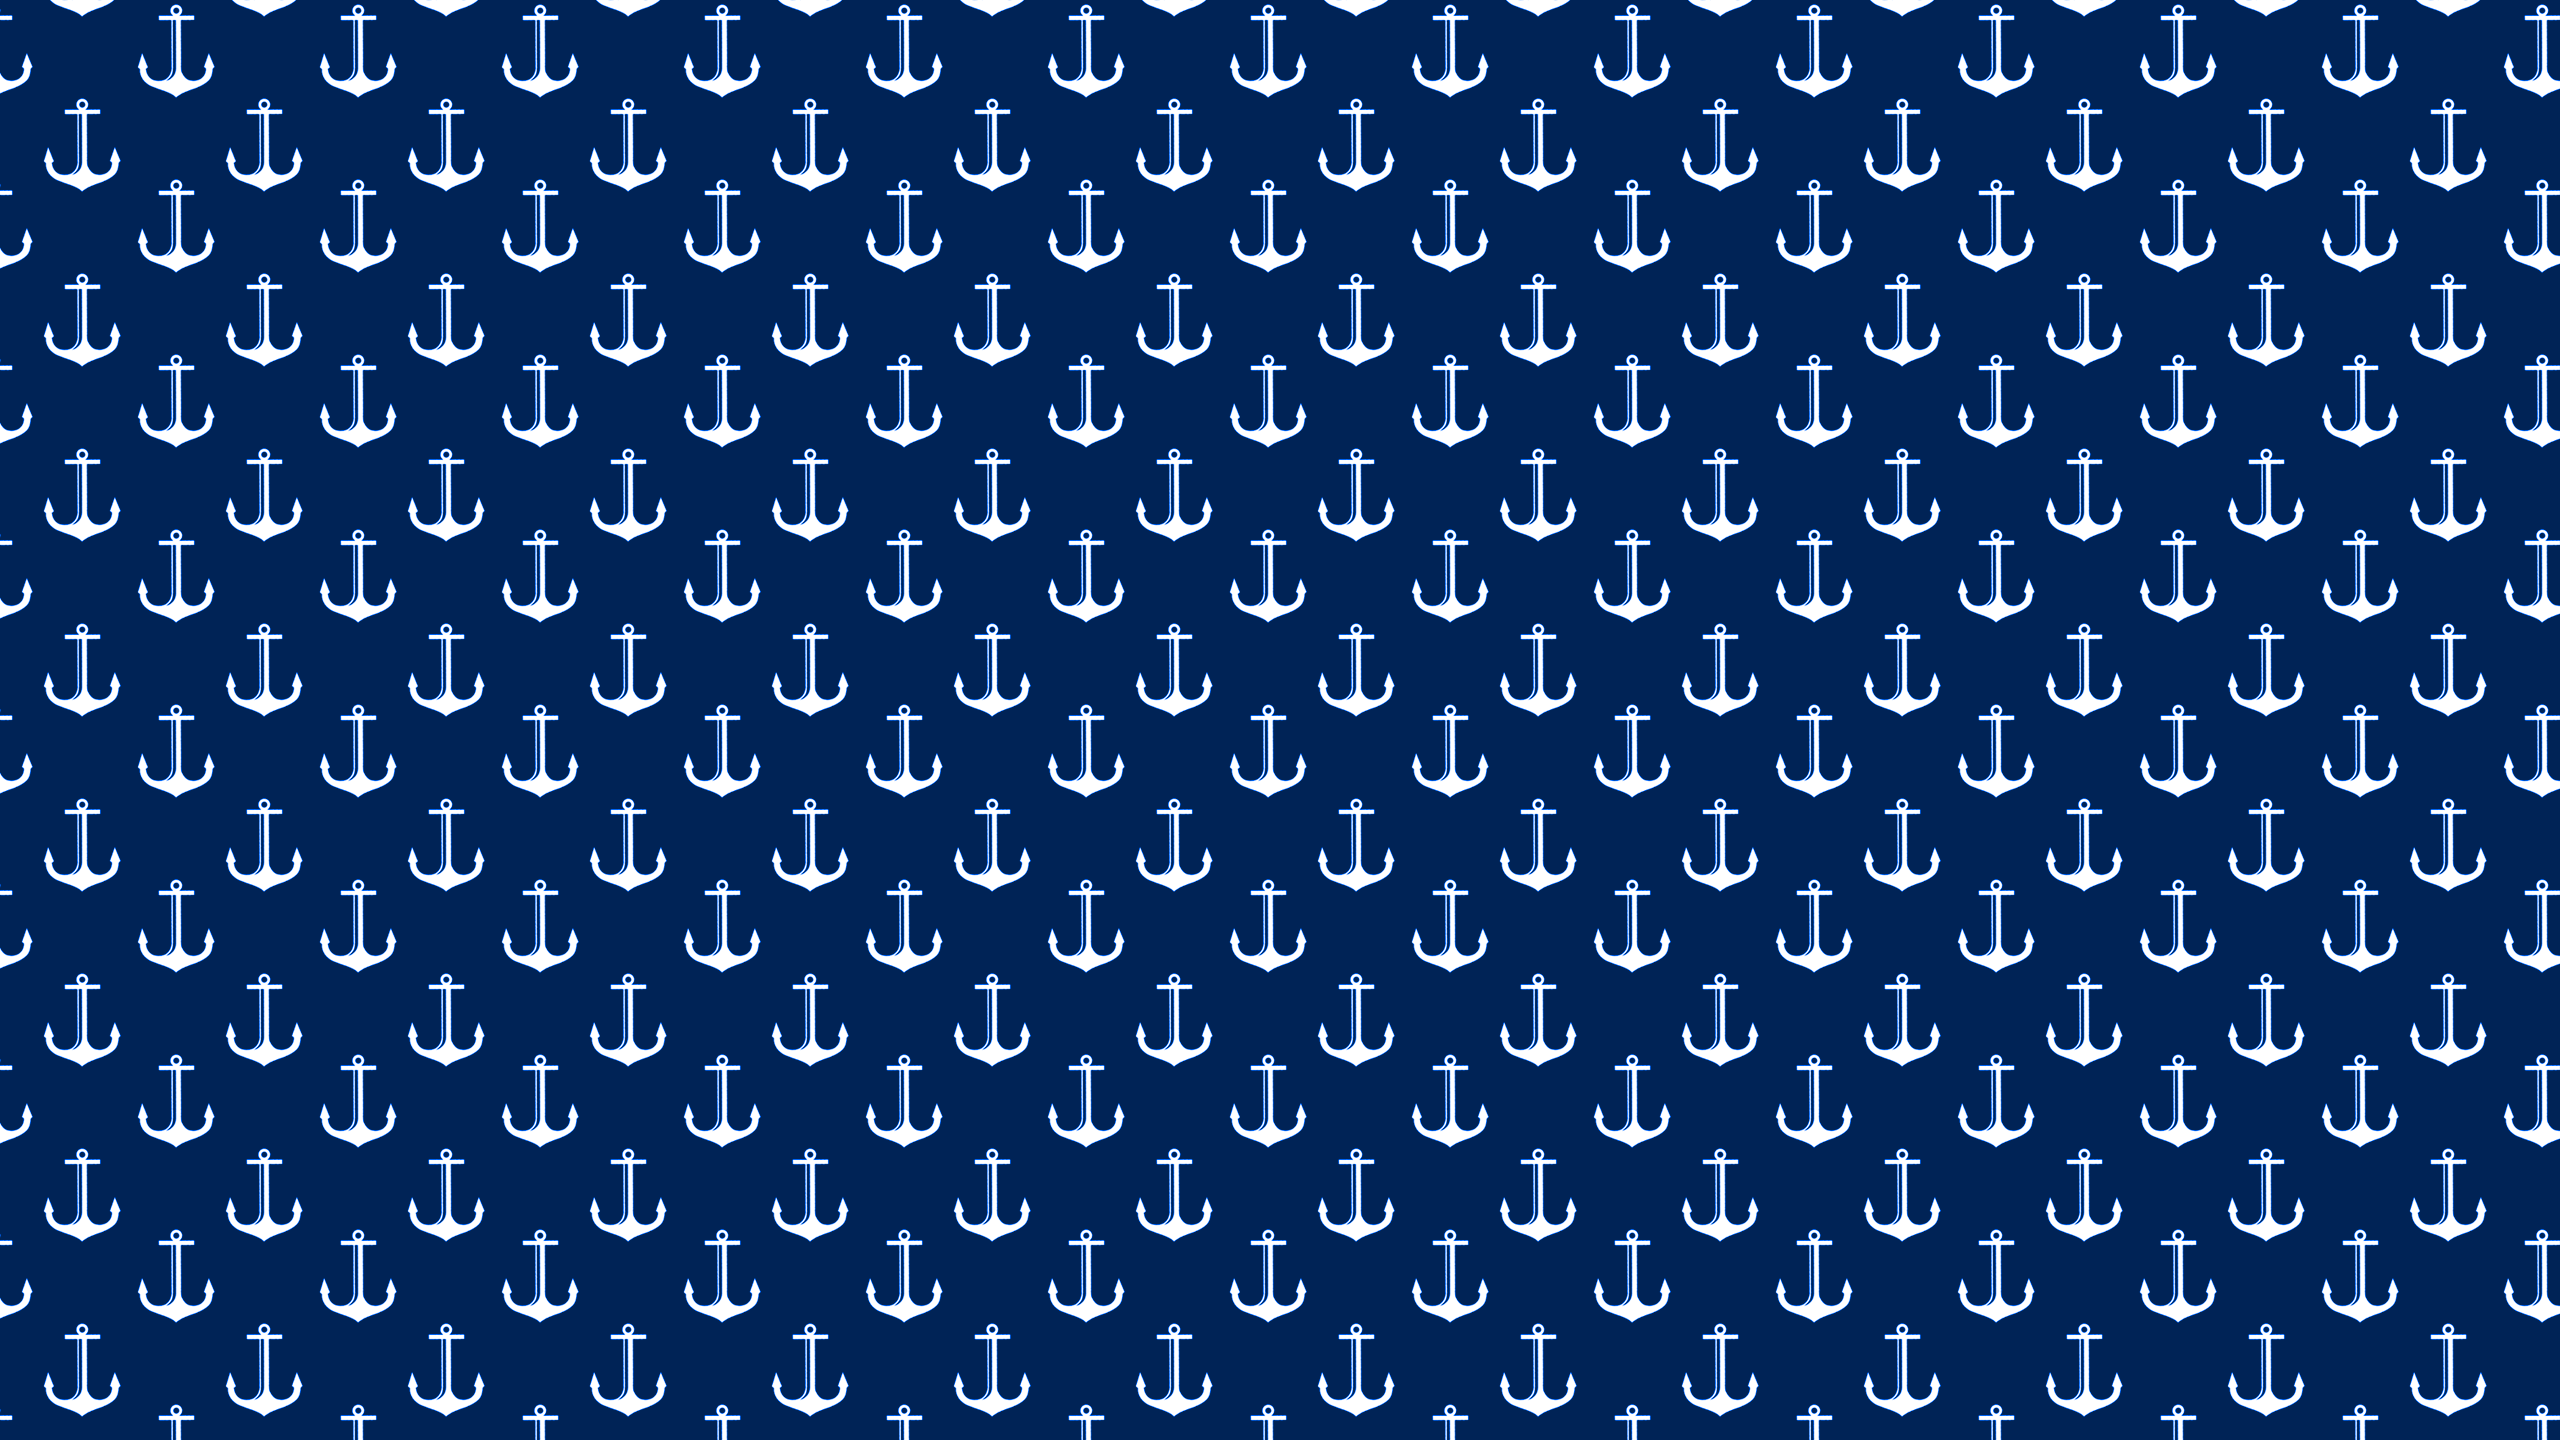 Anchor iphone wallpaper tumblr - Navy Blue Anchors Desktop Wallpaper Is Easy Just Save The Wallpaper